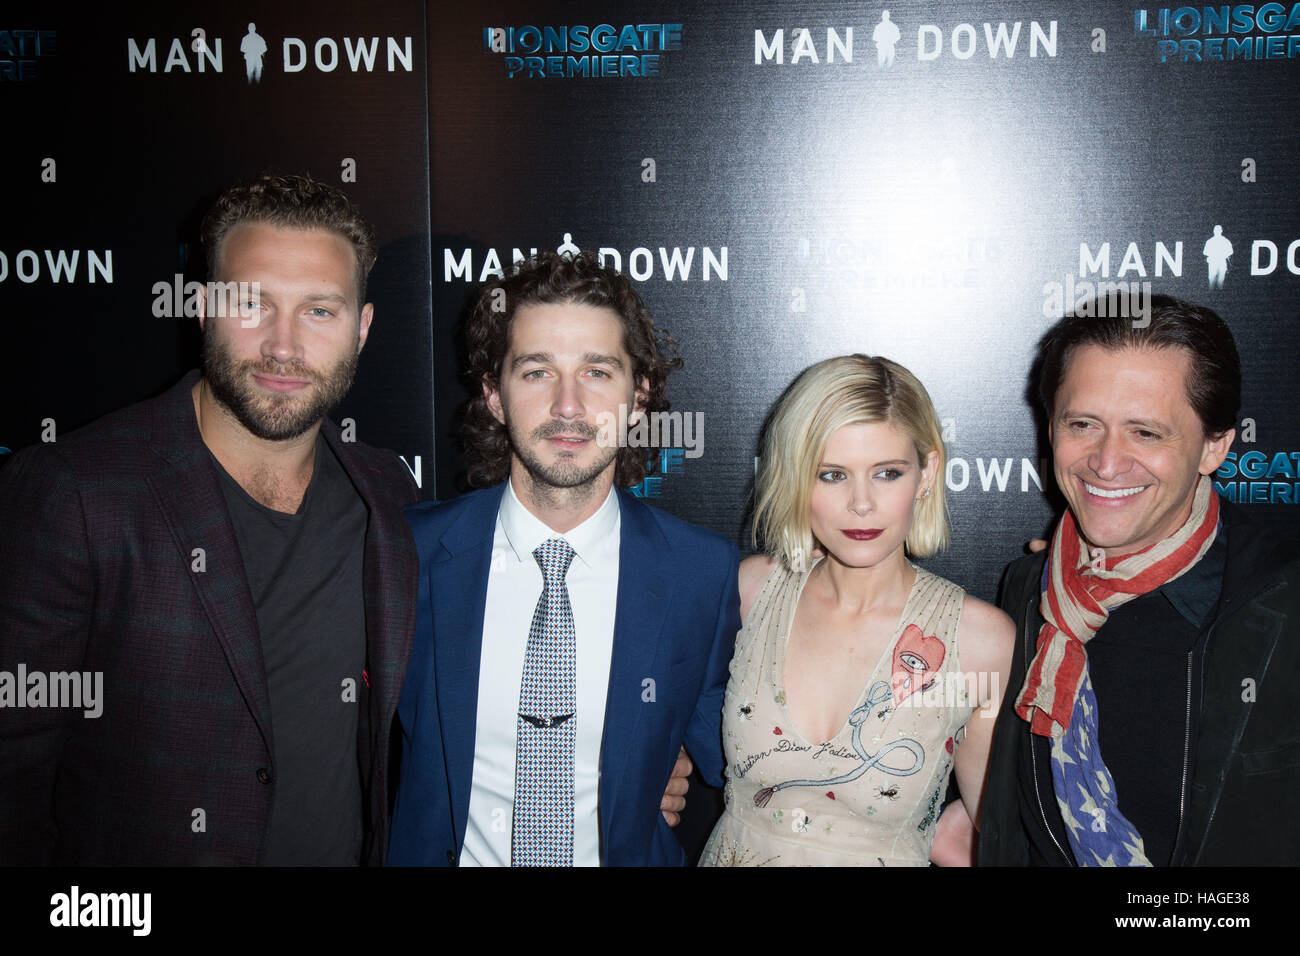 Hollywood, USA. 30. November 2016. Jai Courtney, Shia LaBeouf, Kate Mara und Clifton Collins Jr. besuchen die Premiere Stockbild